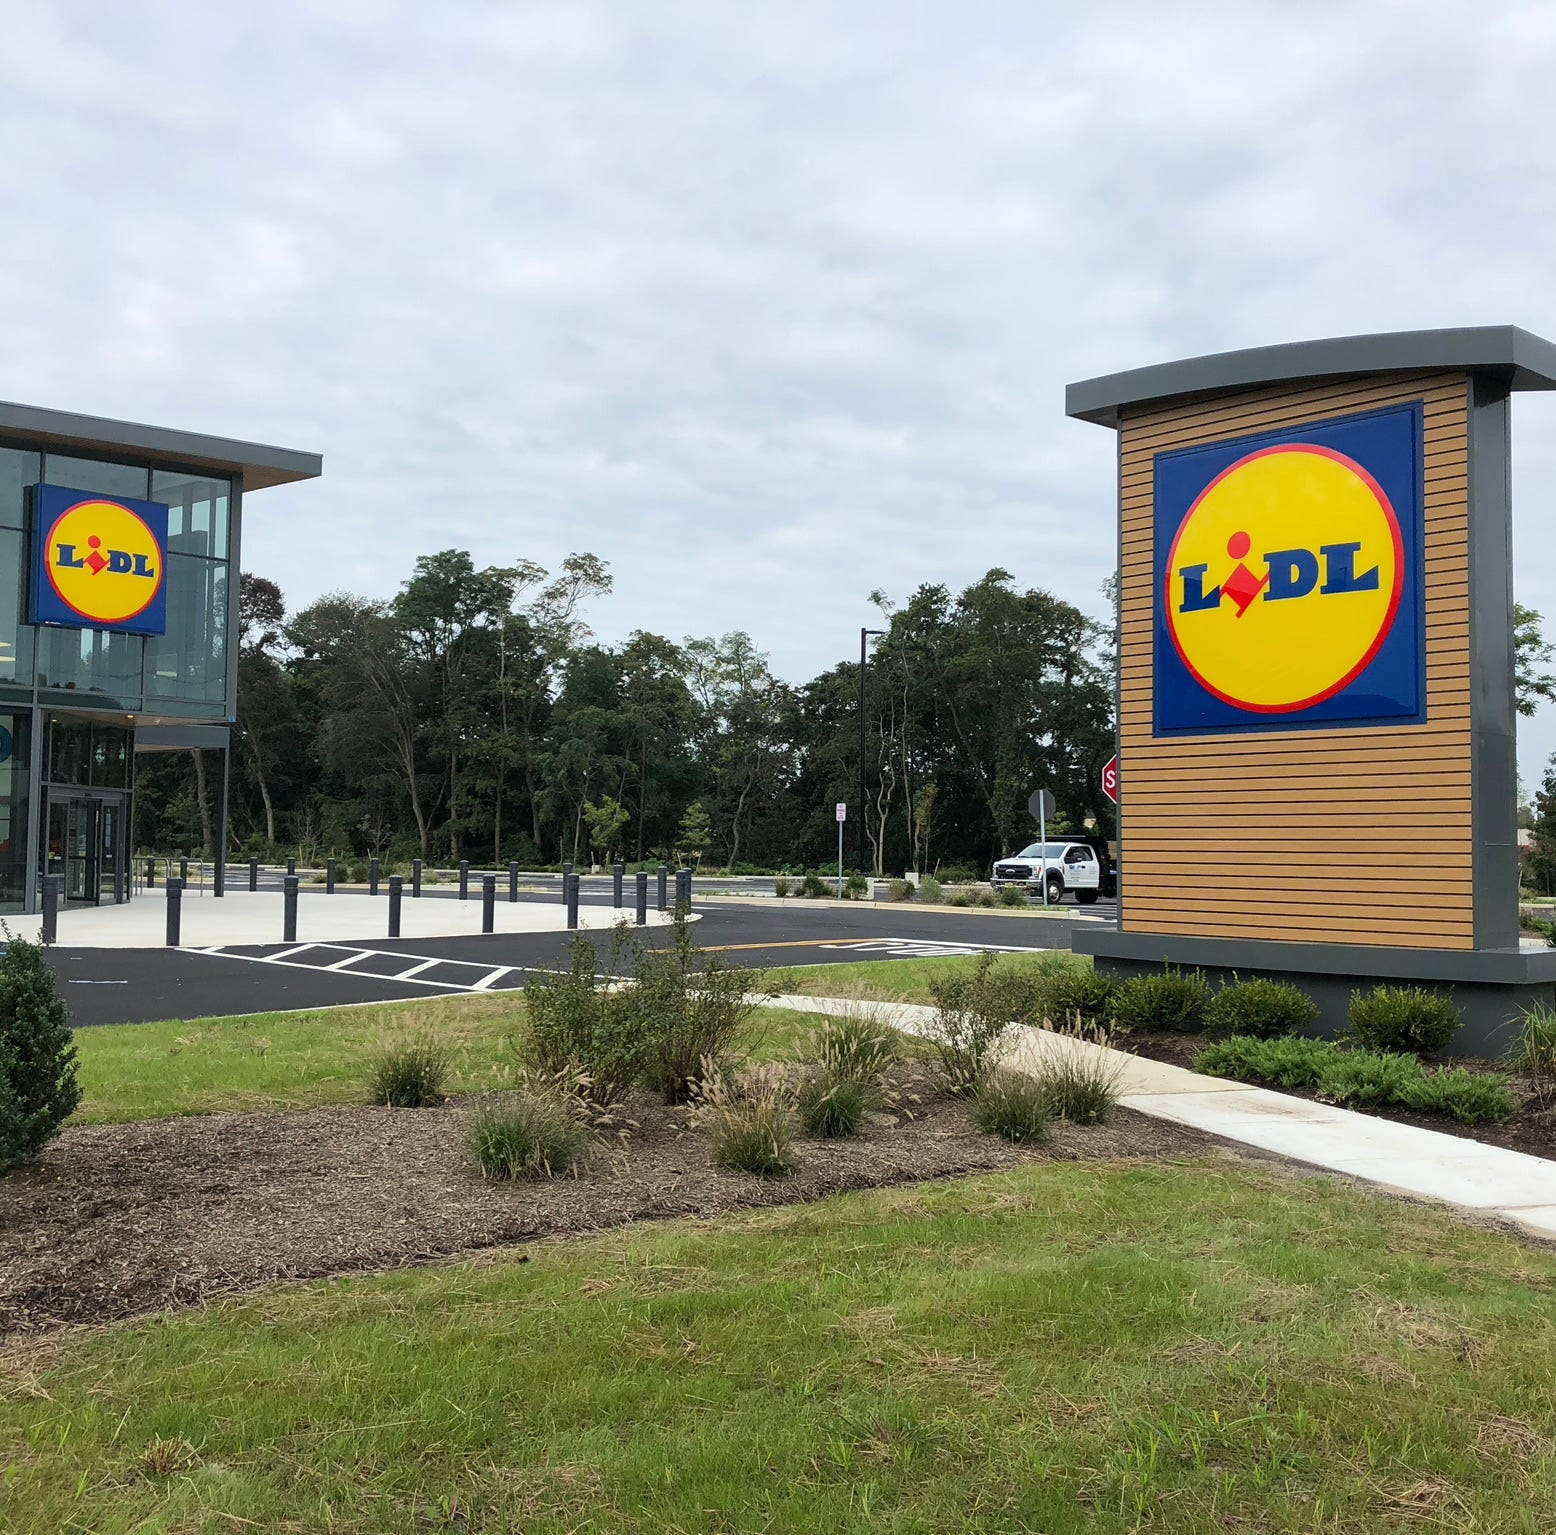 Get ready, Lidl stores to open in Hazlet, Eatontown